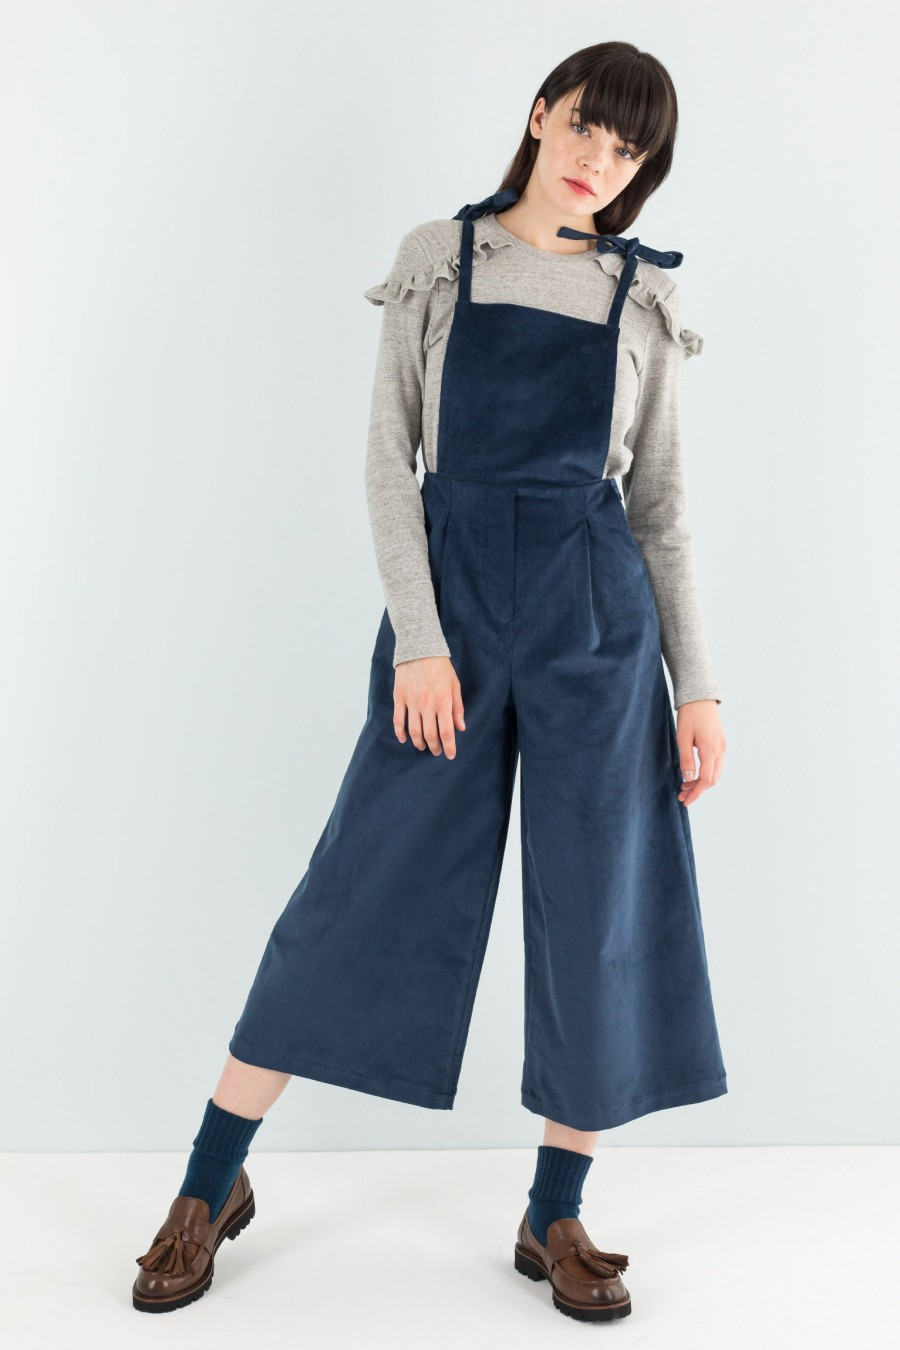 Wintery navy blue overalls